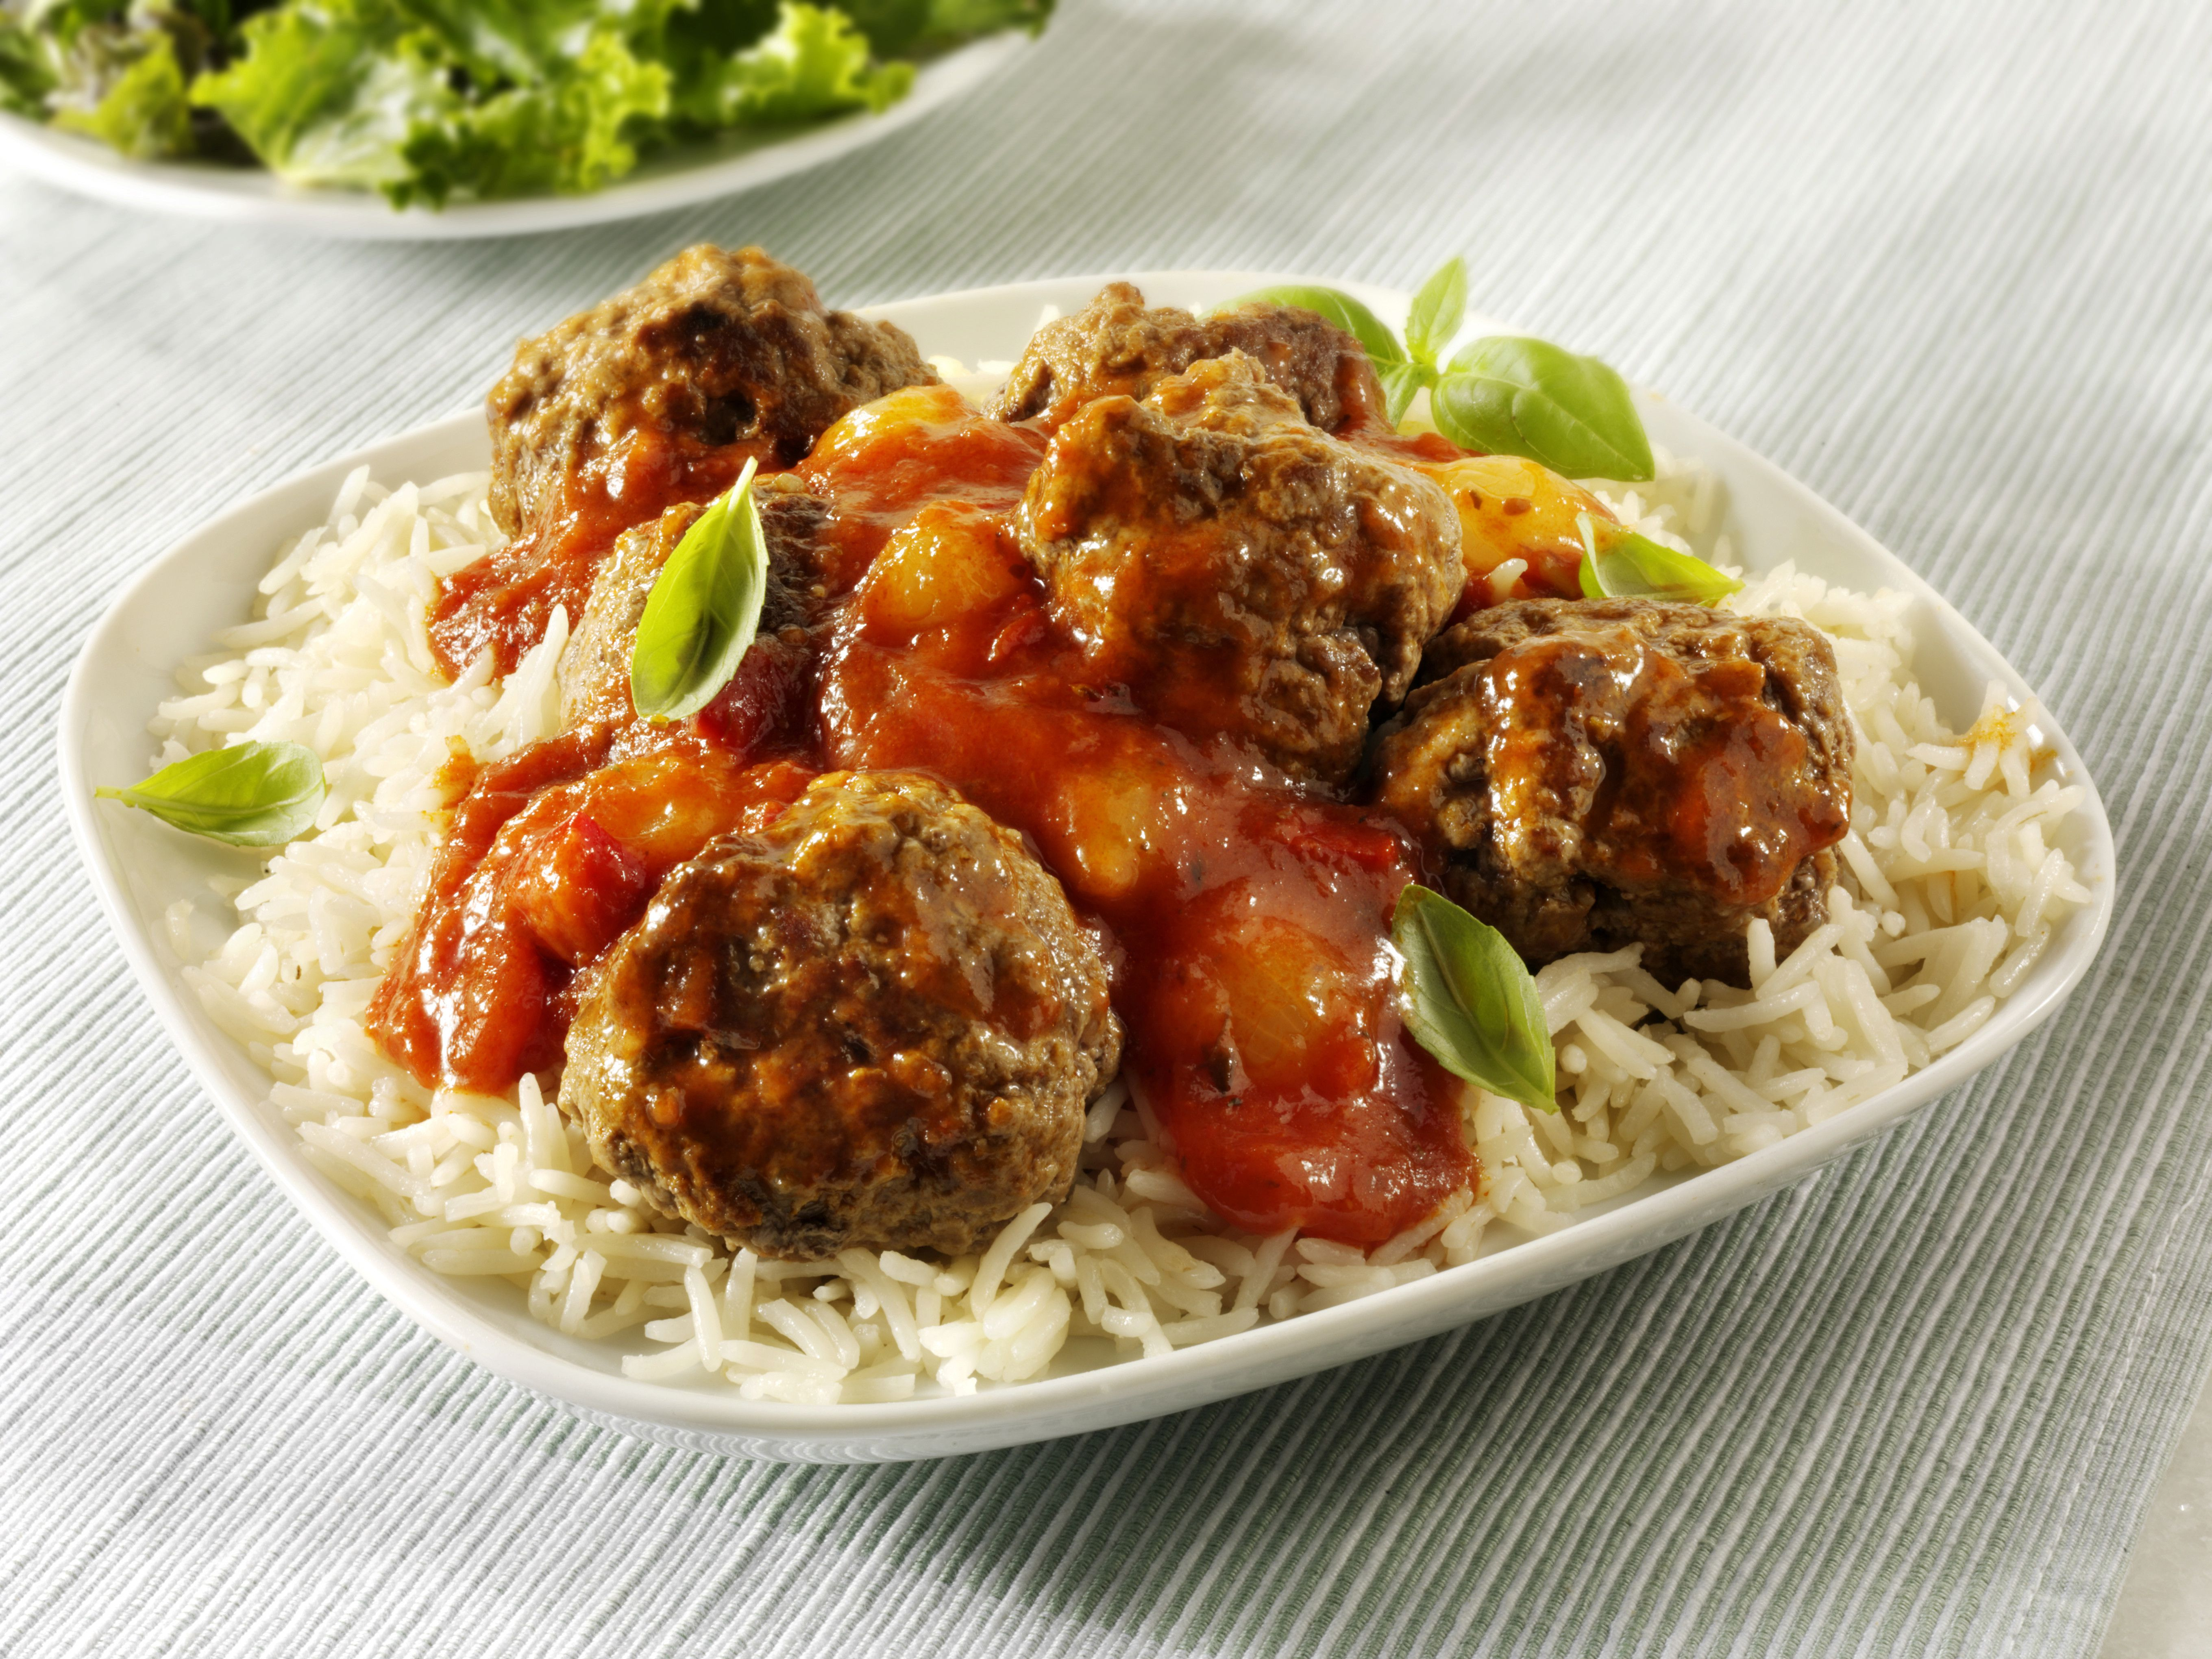 Meatballs Small Dogs